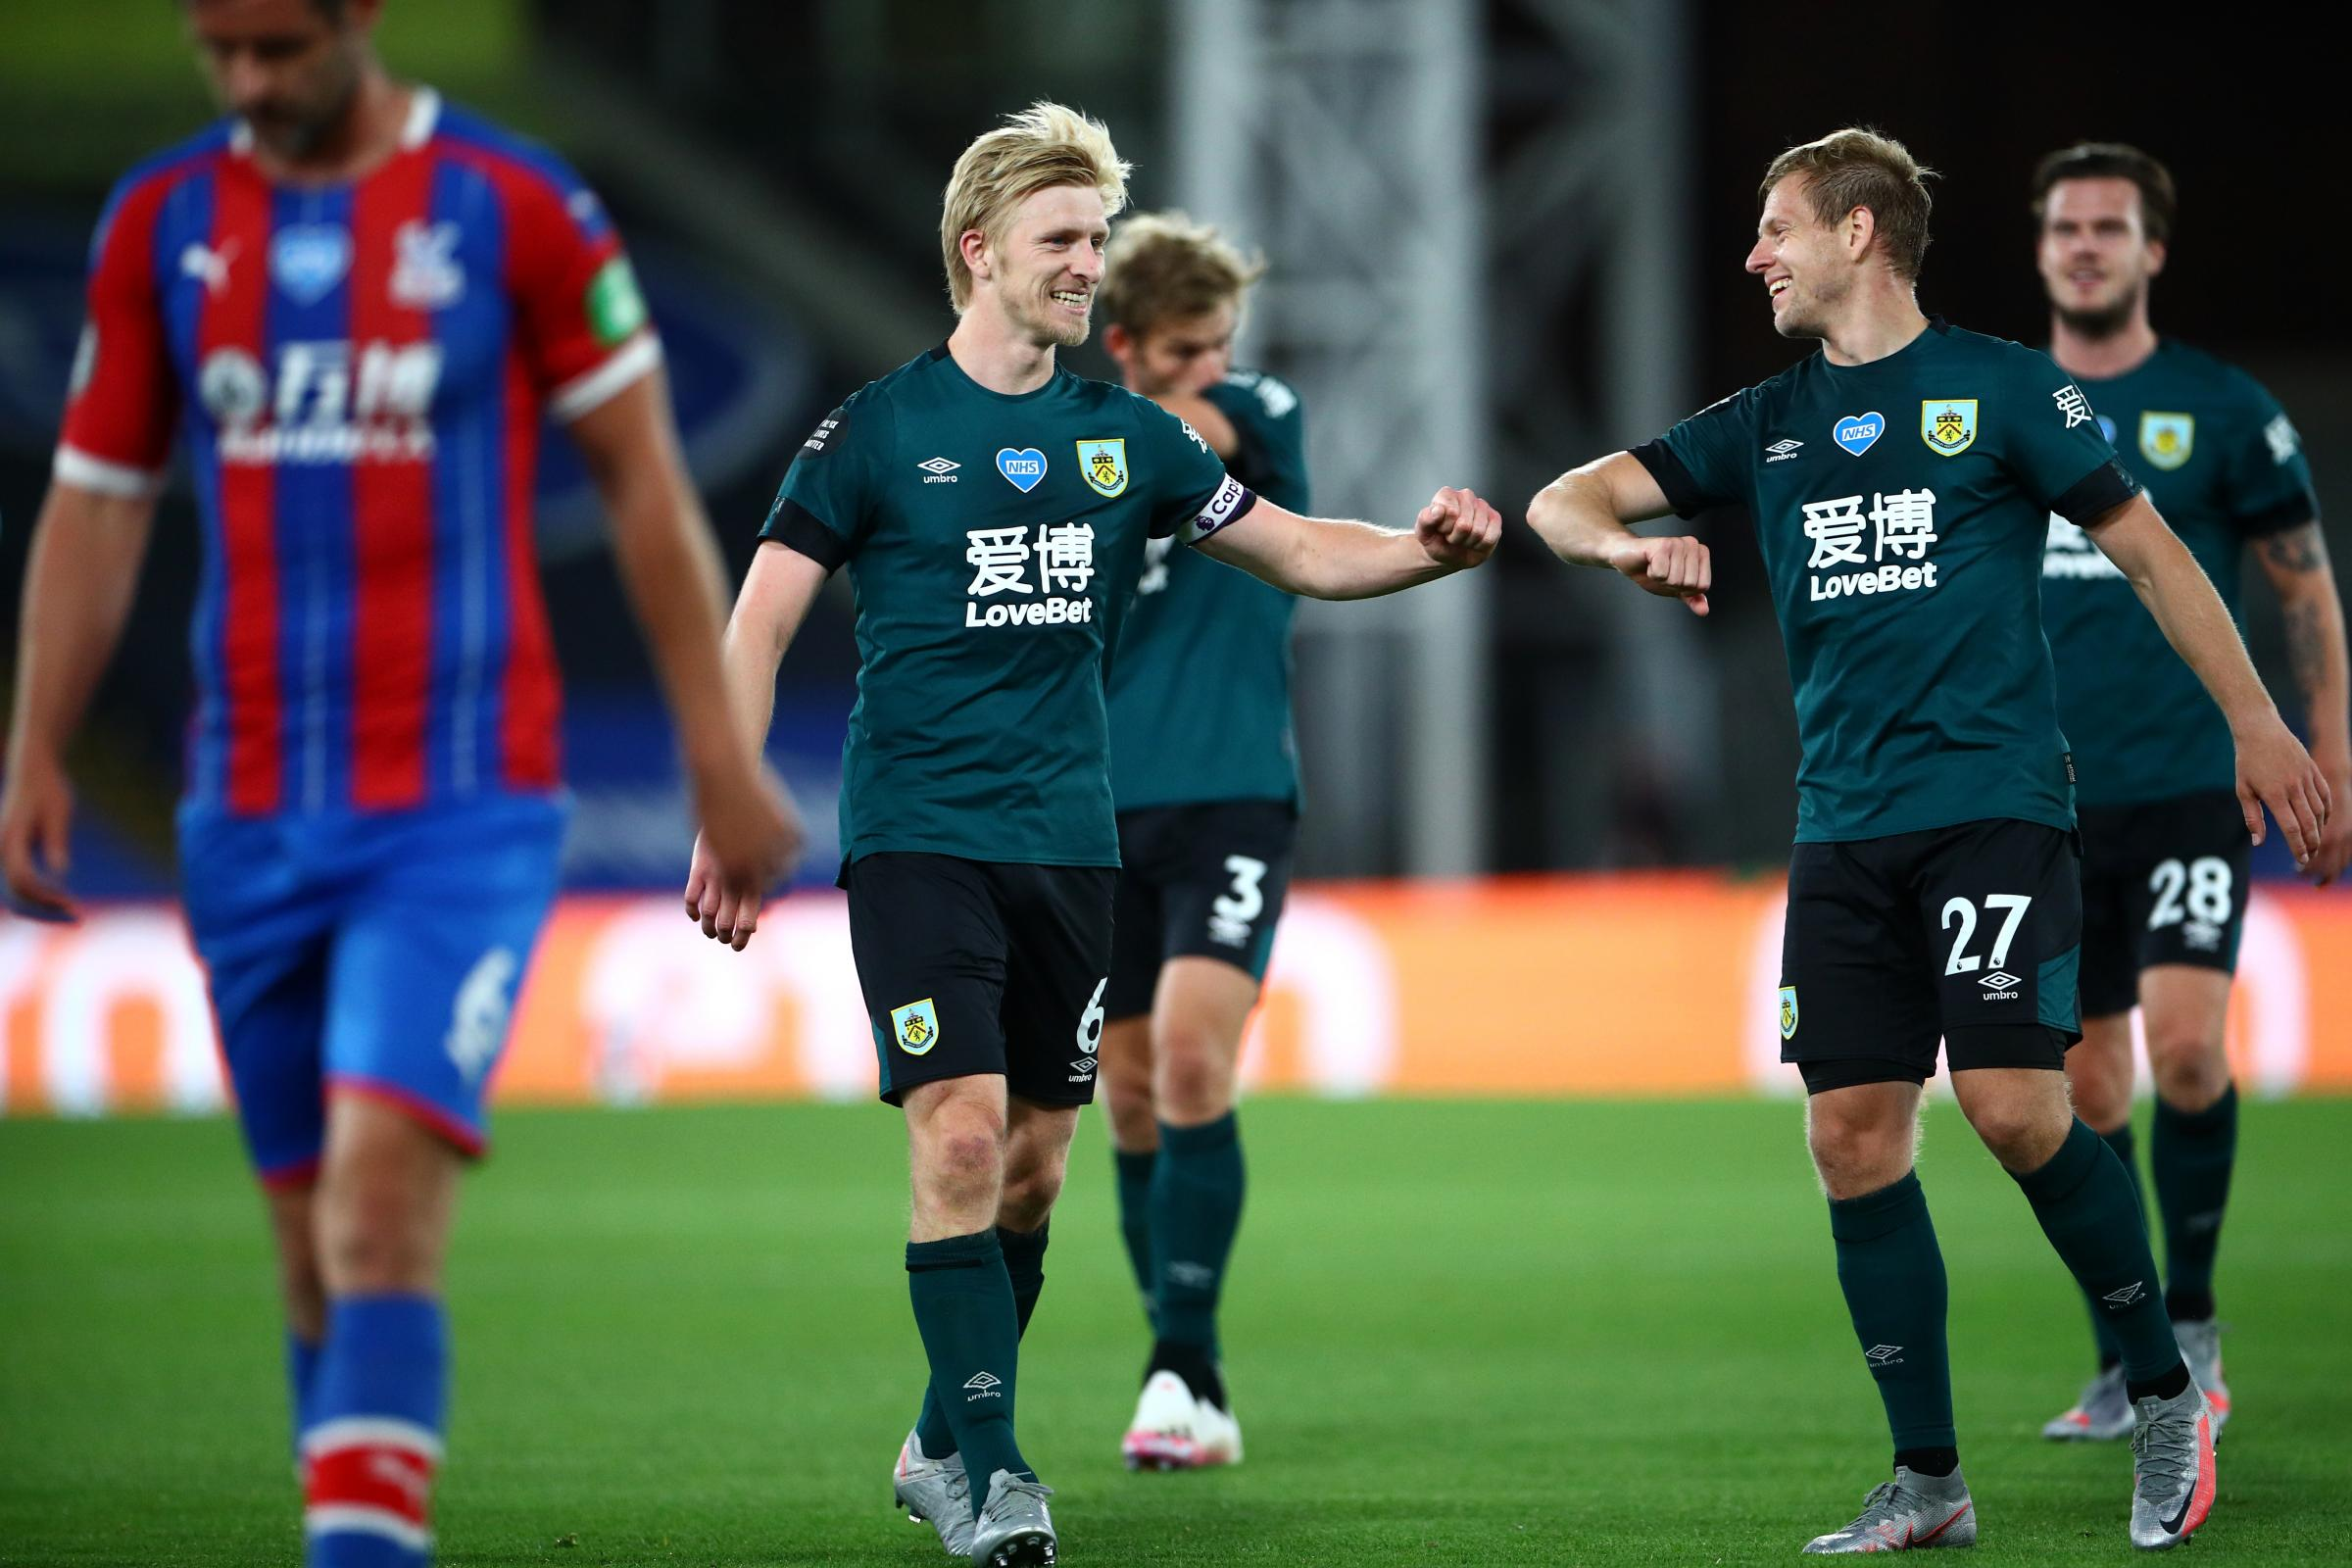 Burnley captain Ben Mee pleased to be talking about football again